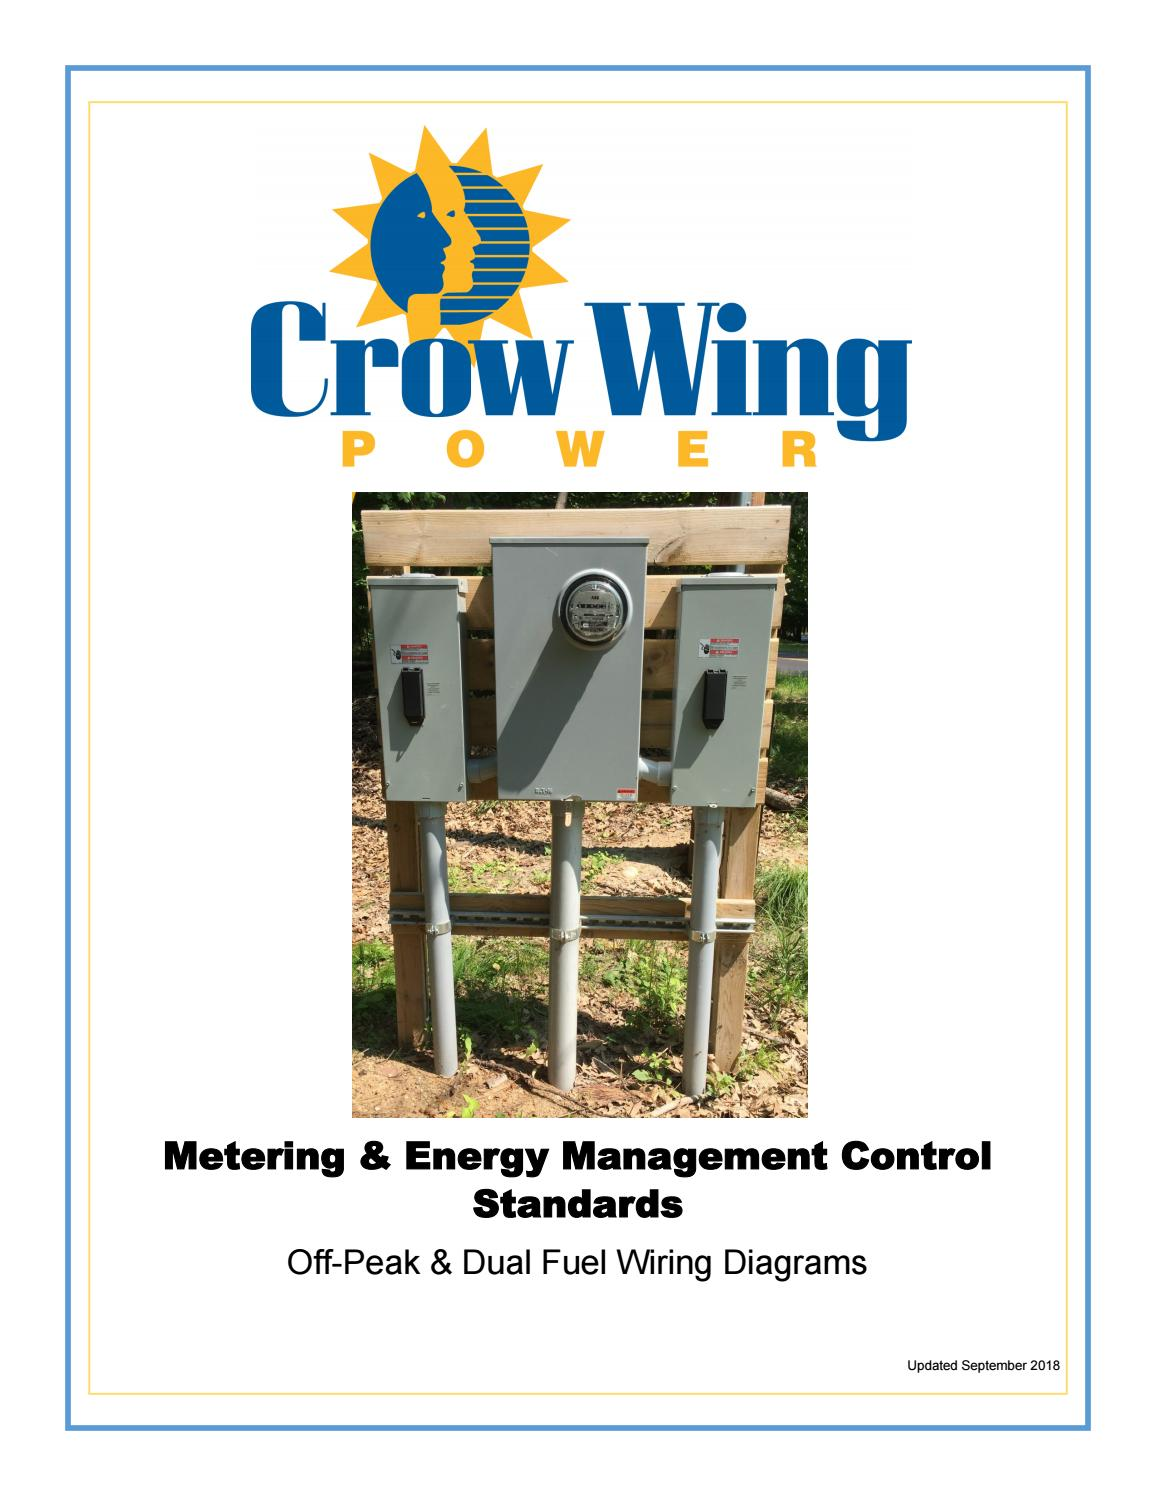 Metering & Energy Management Control Standards by cwpower ... on